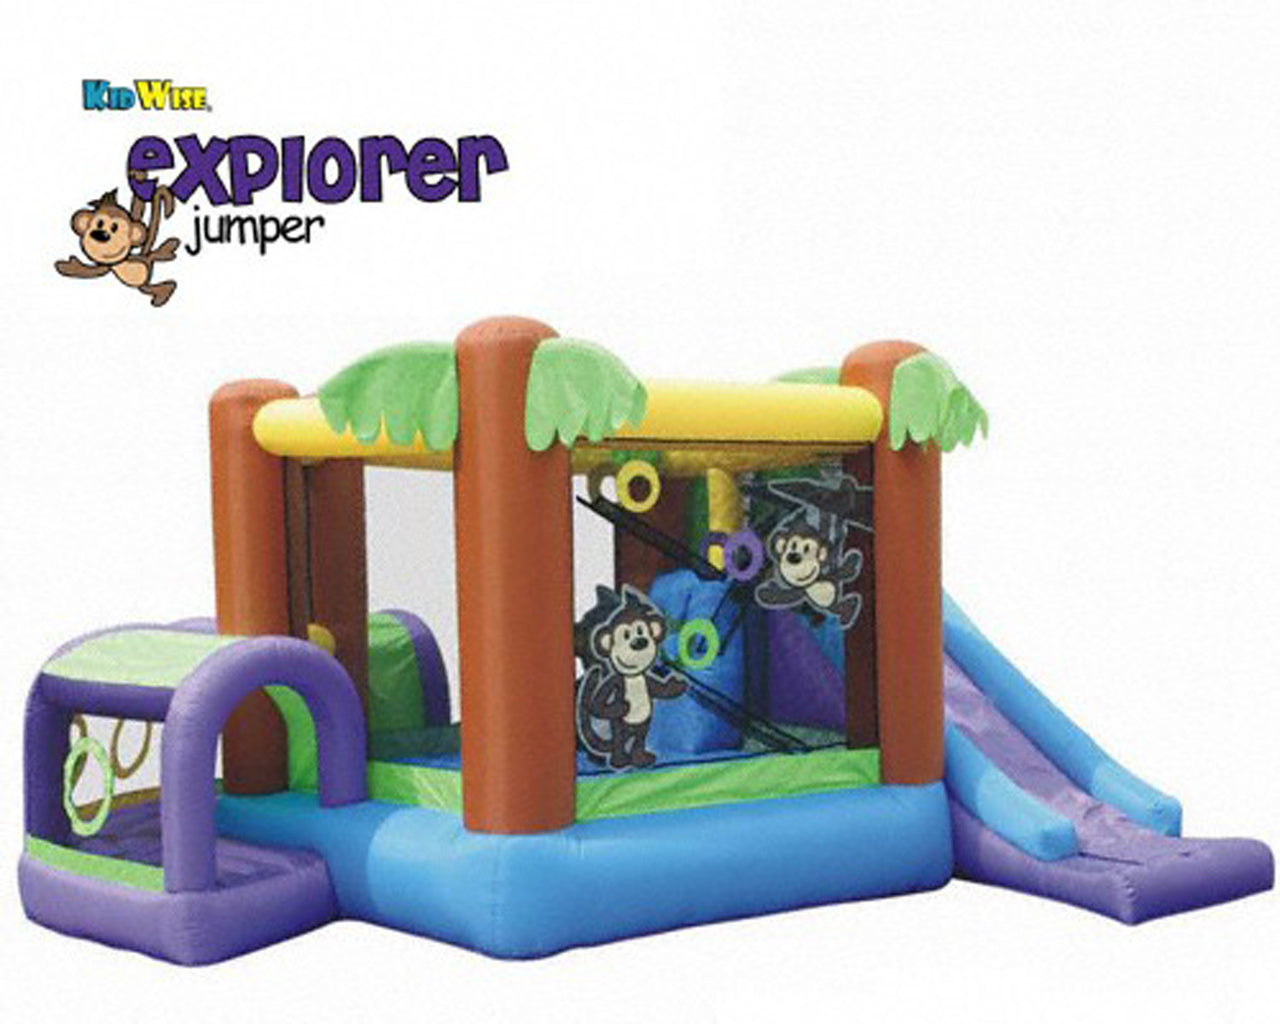 KidWise Monkey Explorer Jumper - Inflatable Bounce House (KW-EXP-04C-R)